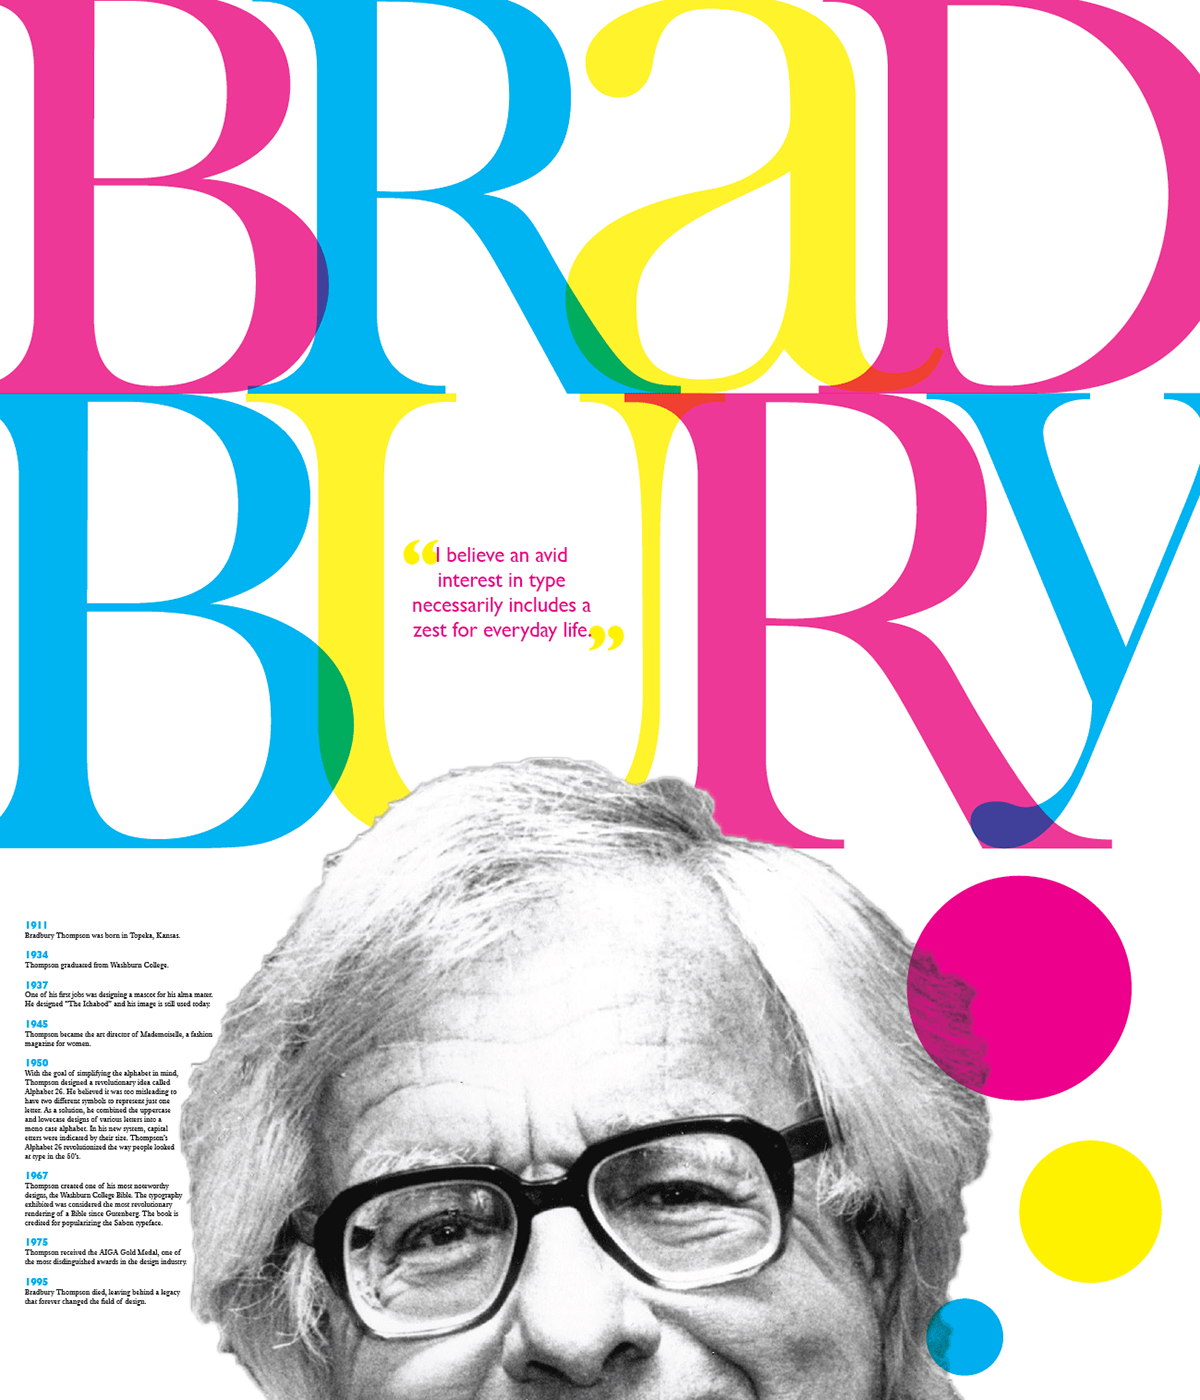 bradbury thompson tribute on behance